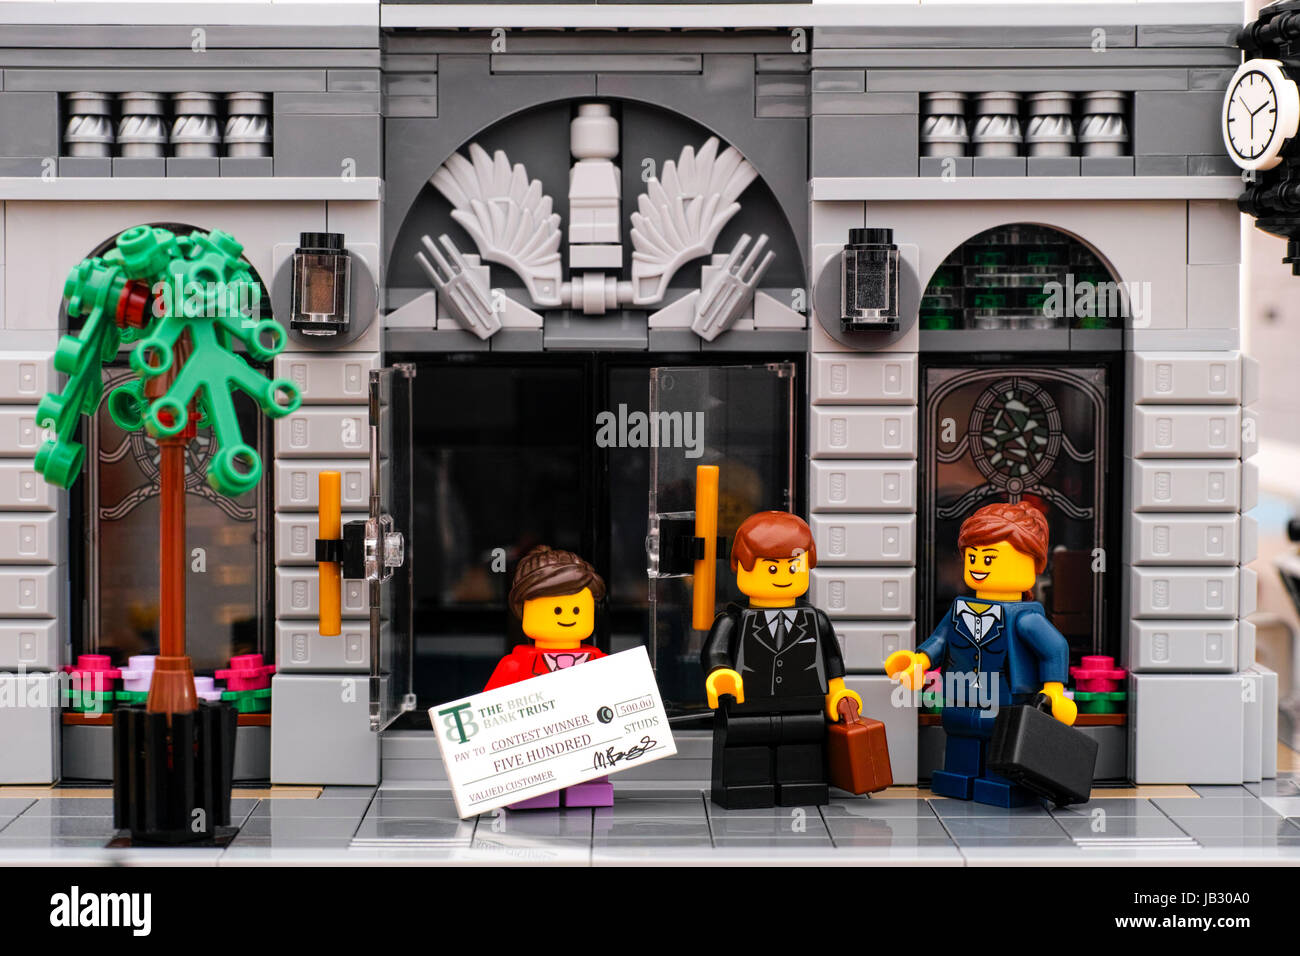 Tambov, Russian Federation - January 21, 2017 Lego bank. Lego girl with prize check comes out of the bank door. - Stock Image